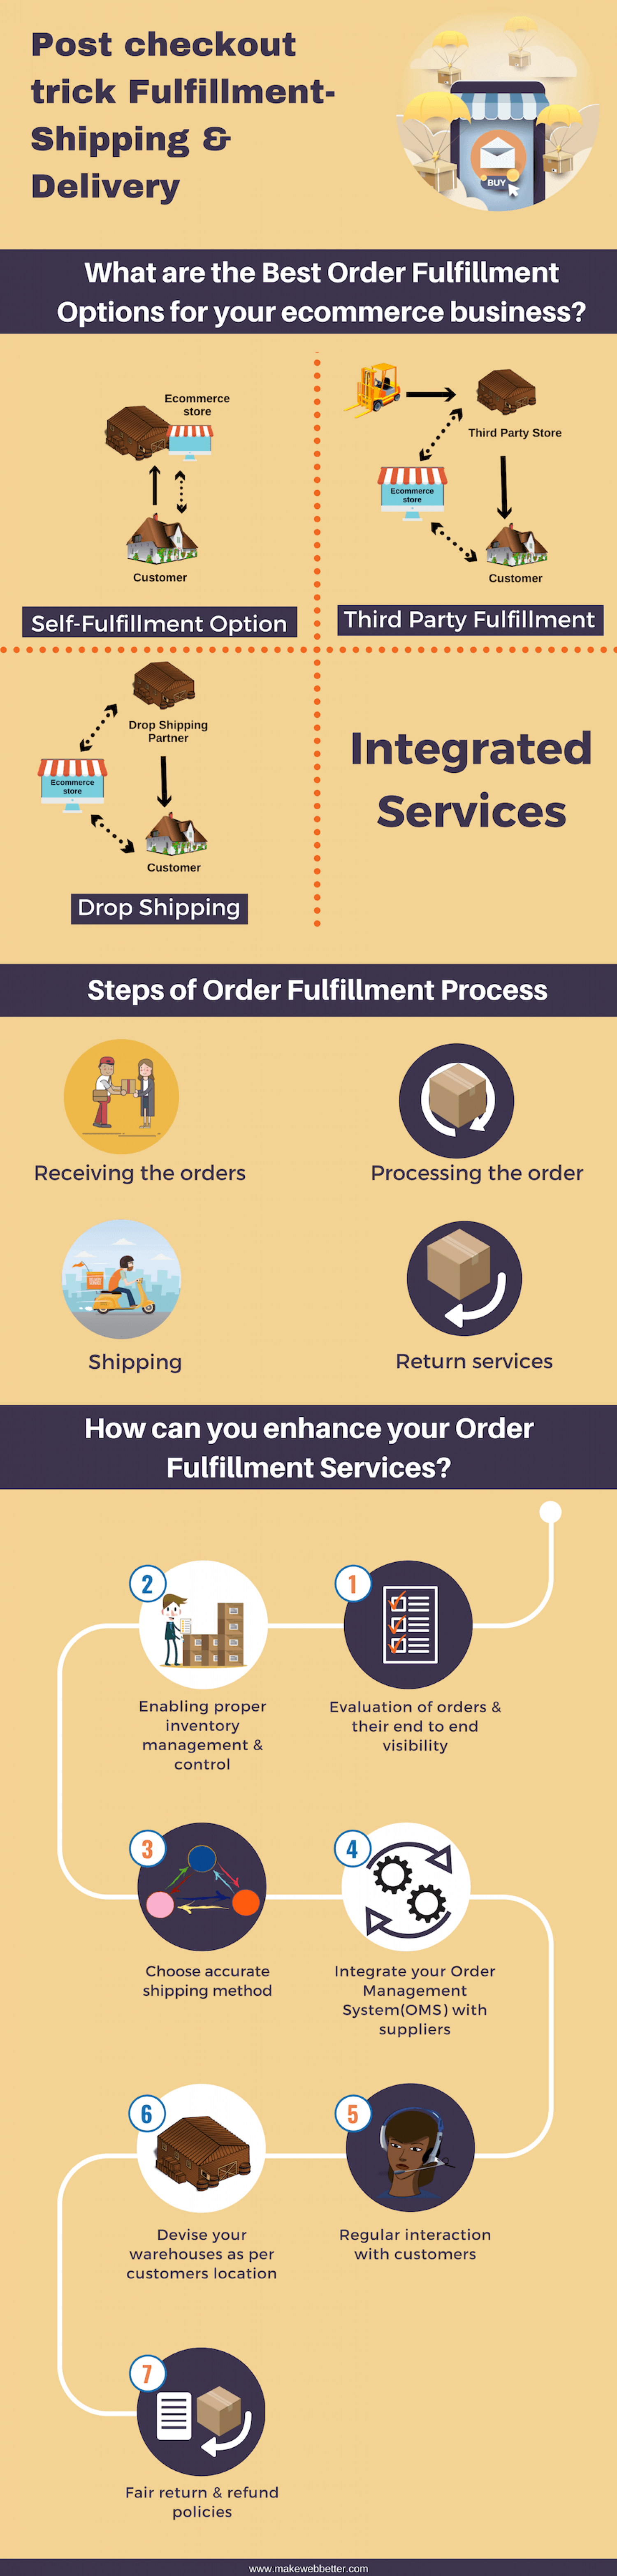 Post Checkout Trick Fulfillment - Shipping and Delivery Infographic